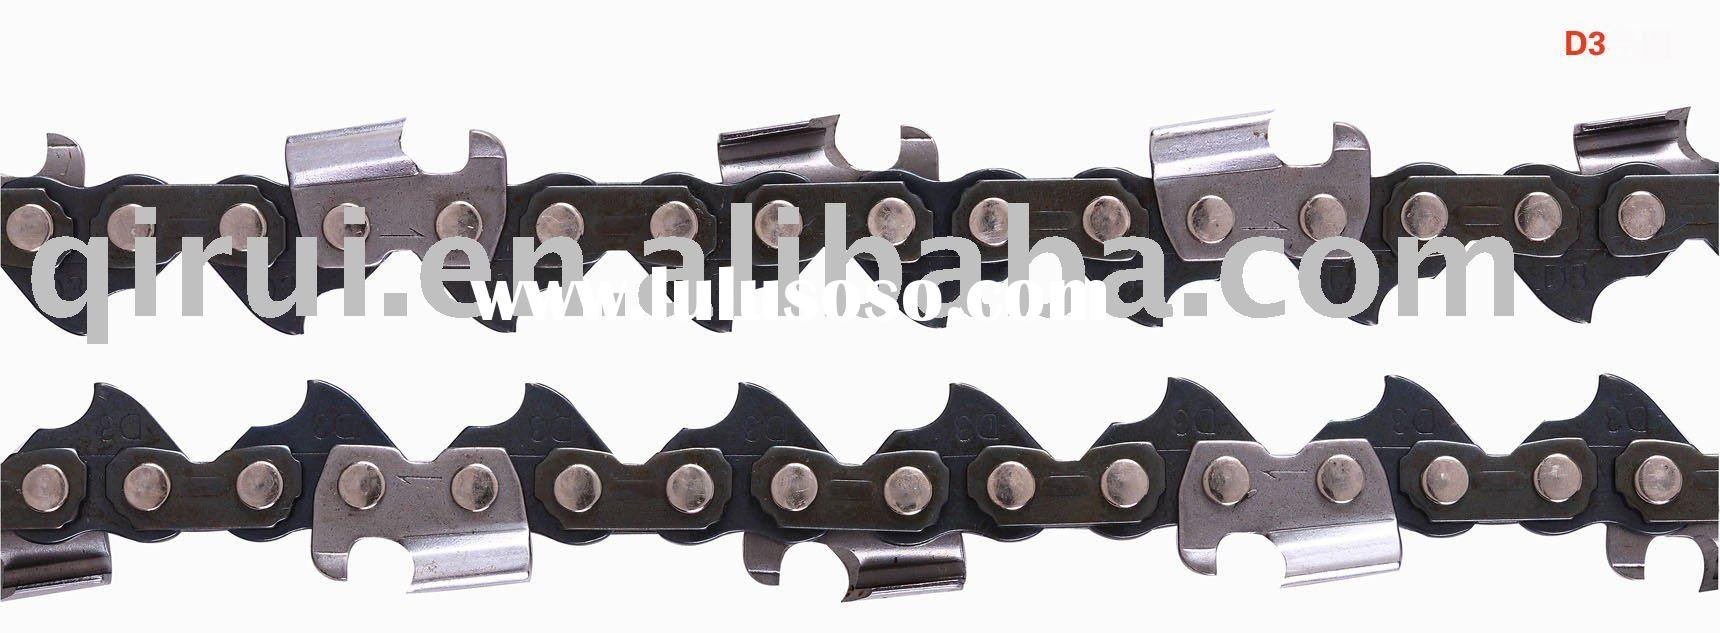 "sawchain (.404"",.063"",saw chain,garden tool parts,chain saw parts,cutting tool parts)"